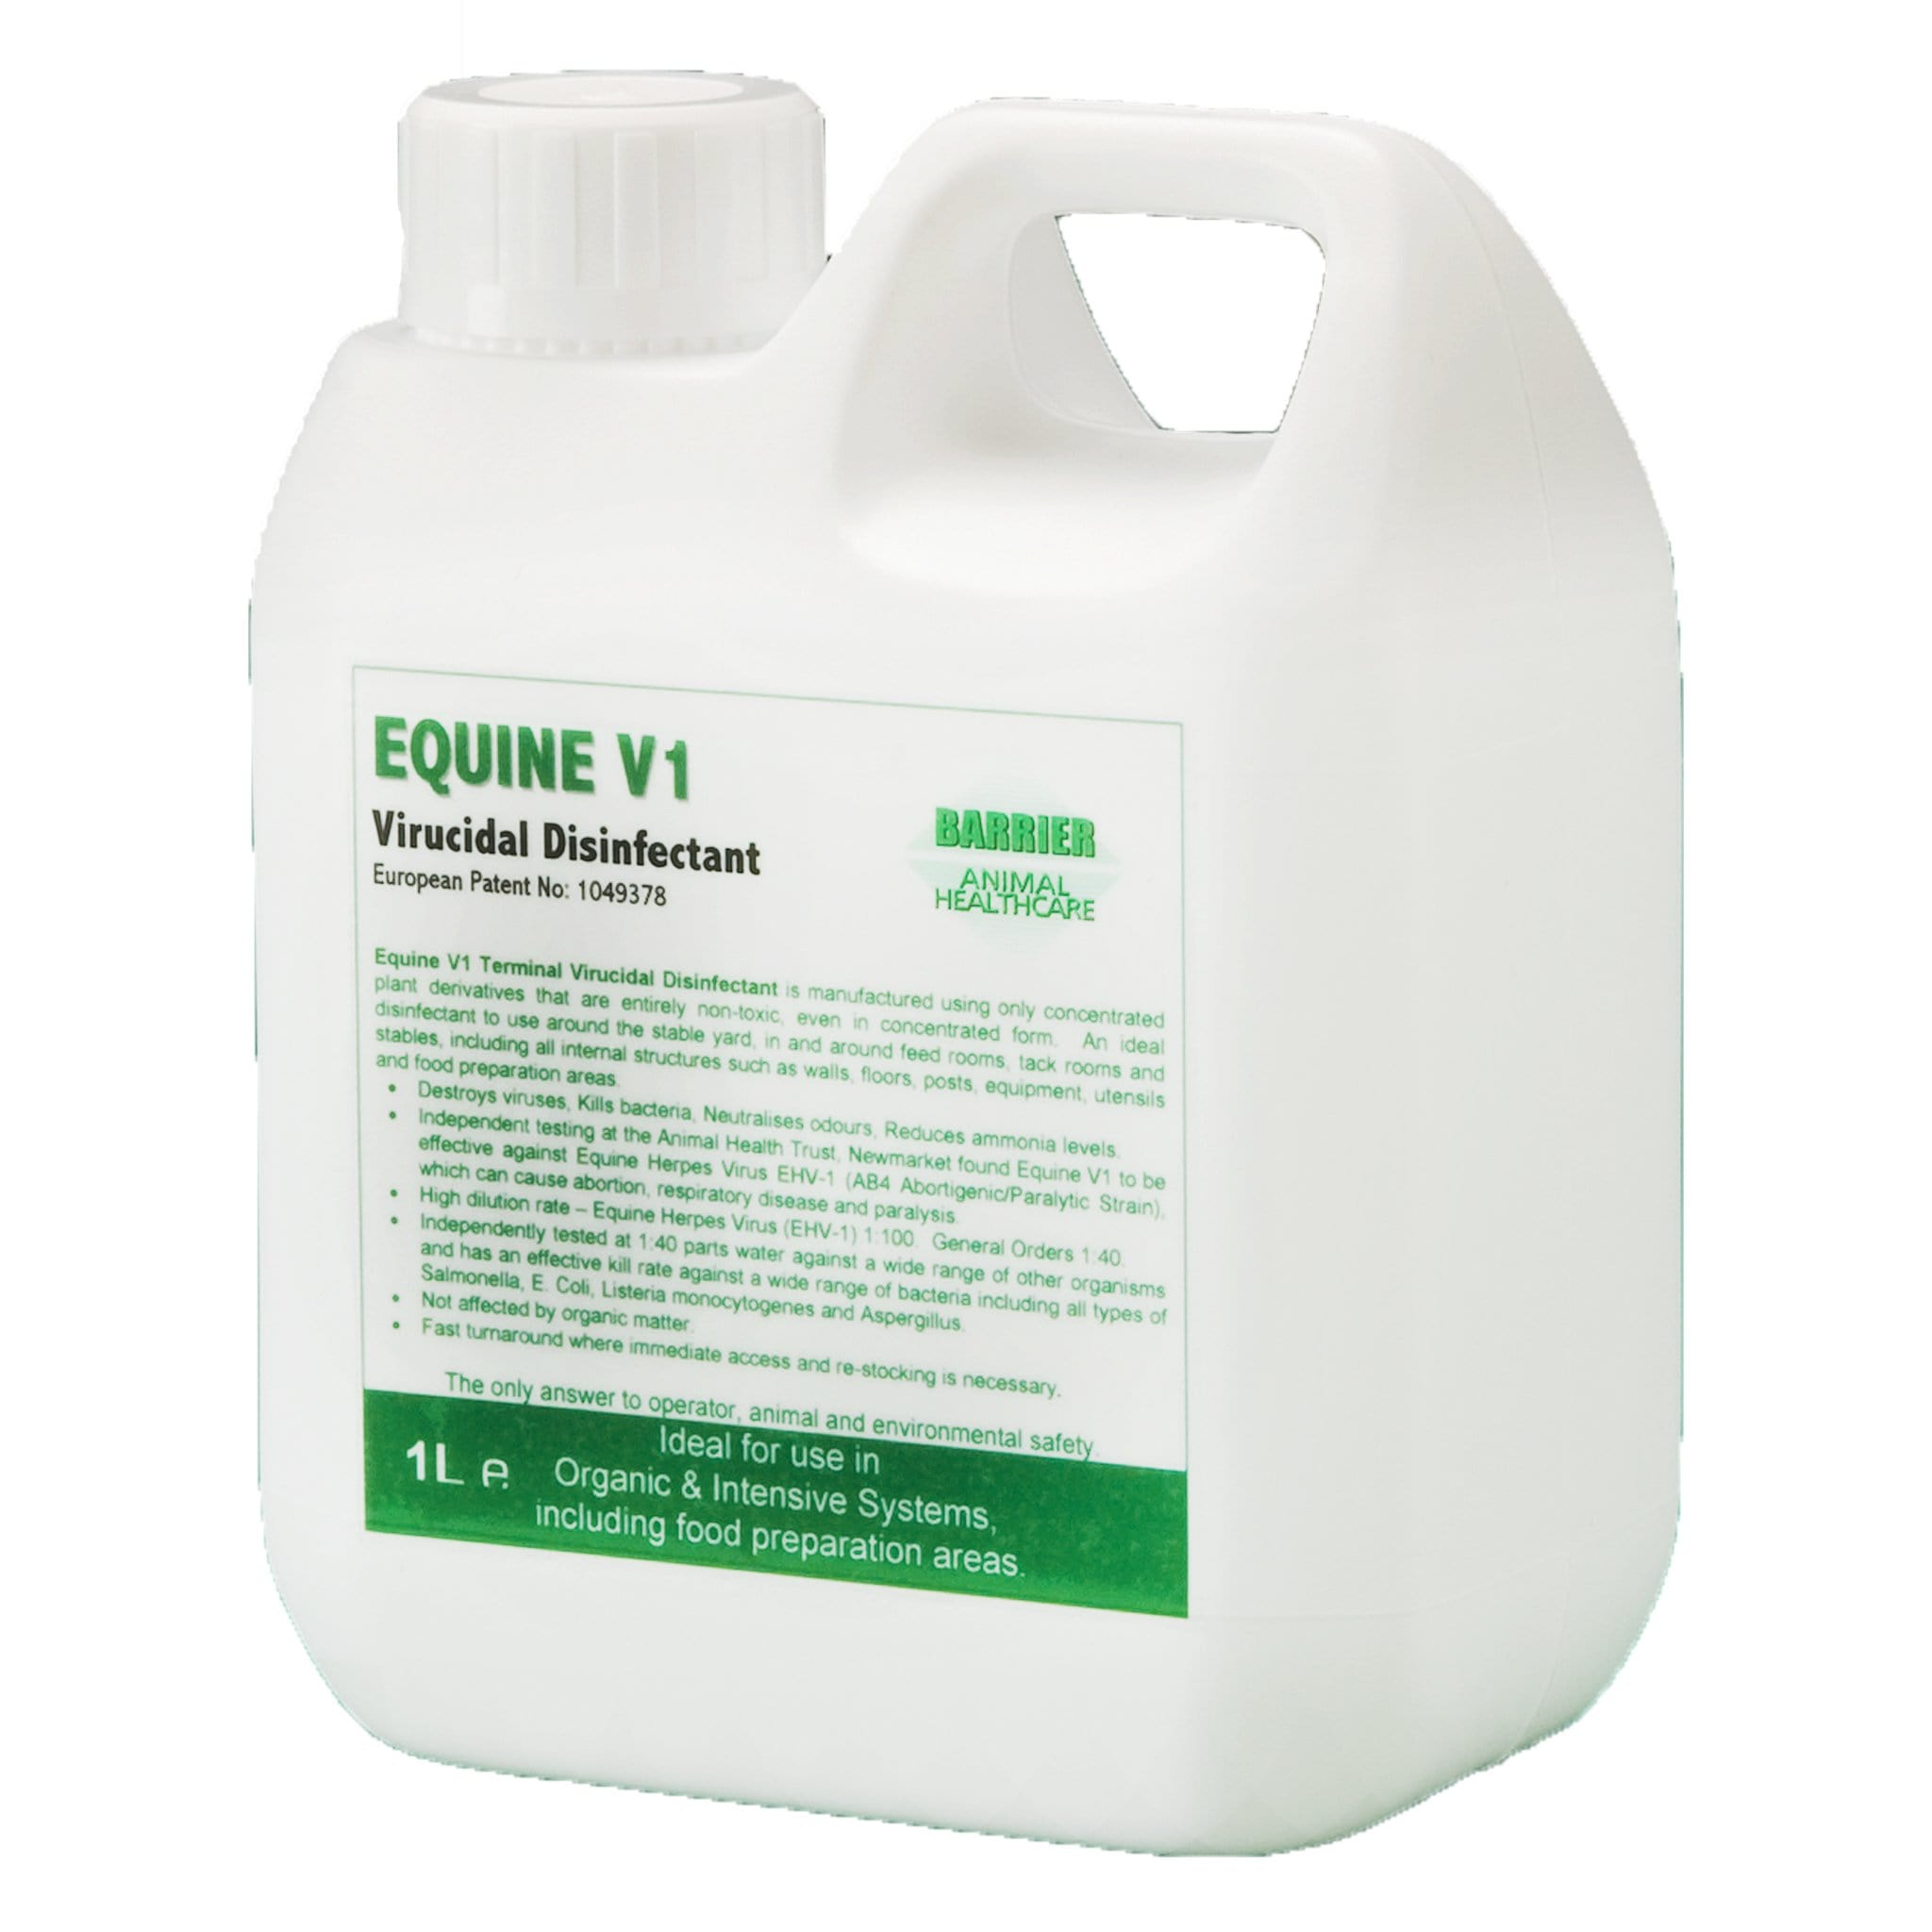 Barrier Equine V1 Virucidal Disinfectant 8492